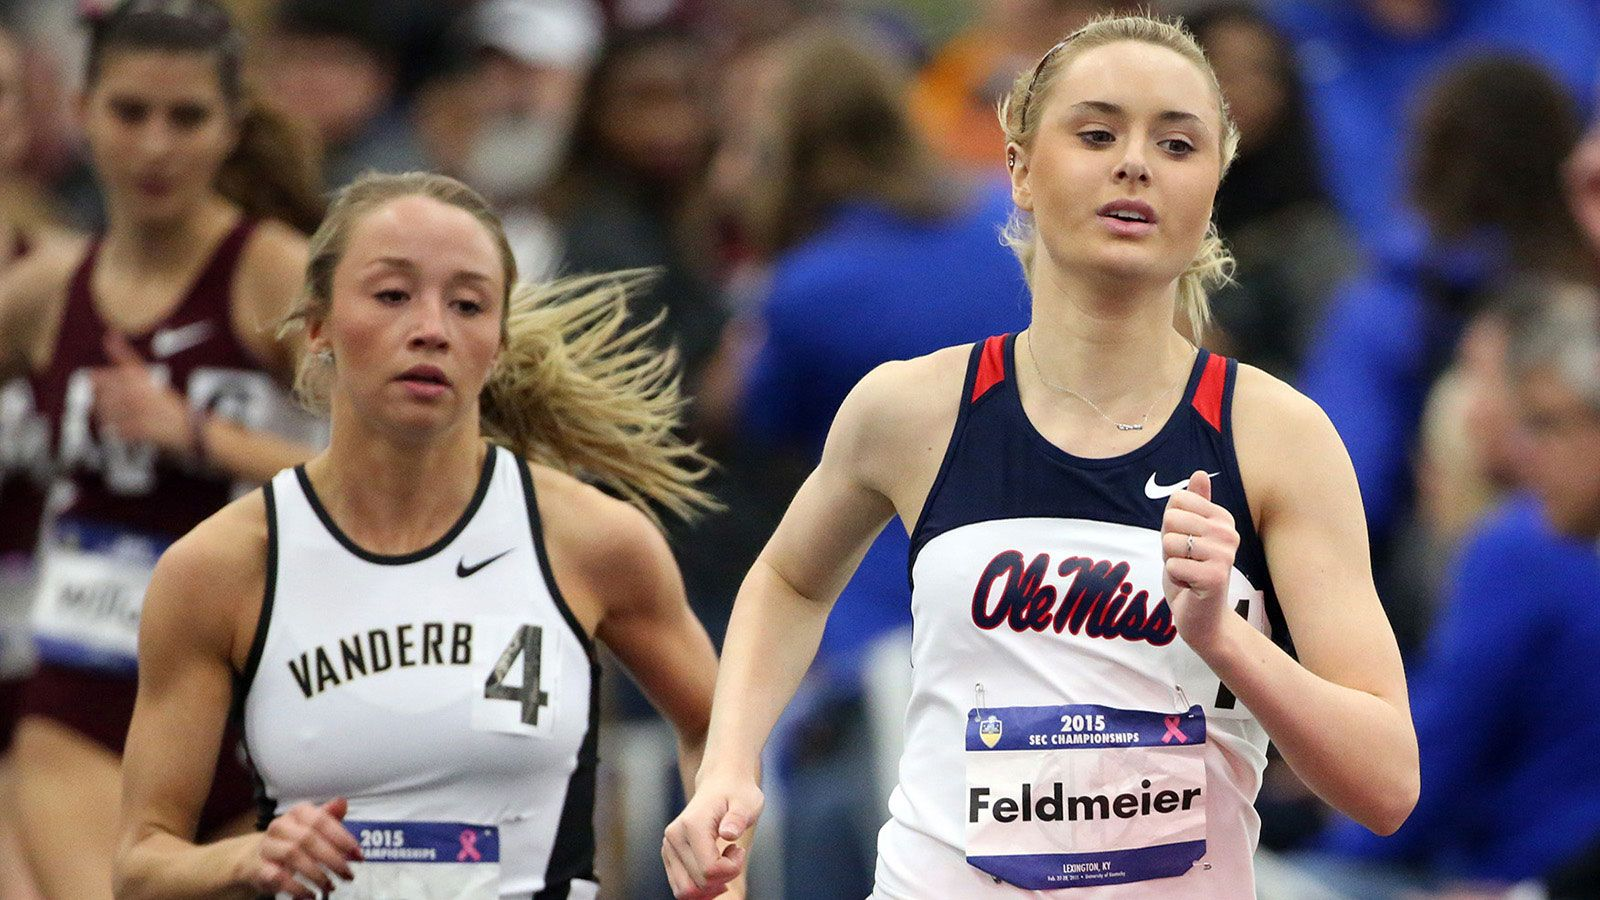 Freshman Feldmeier welcomes challenges in first year at Ole Miss